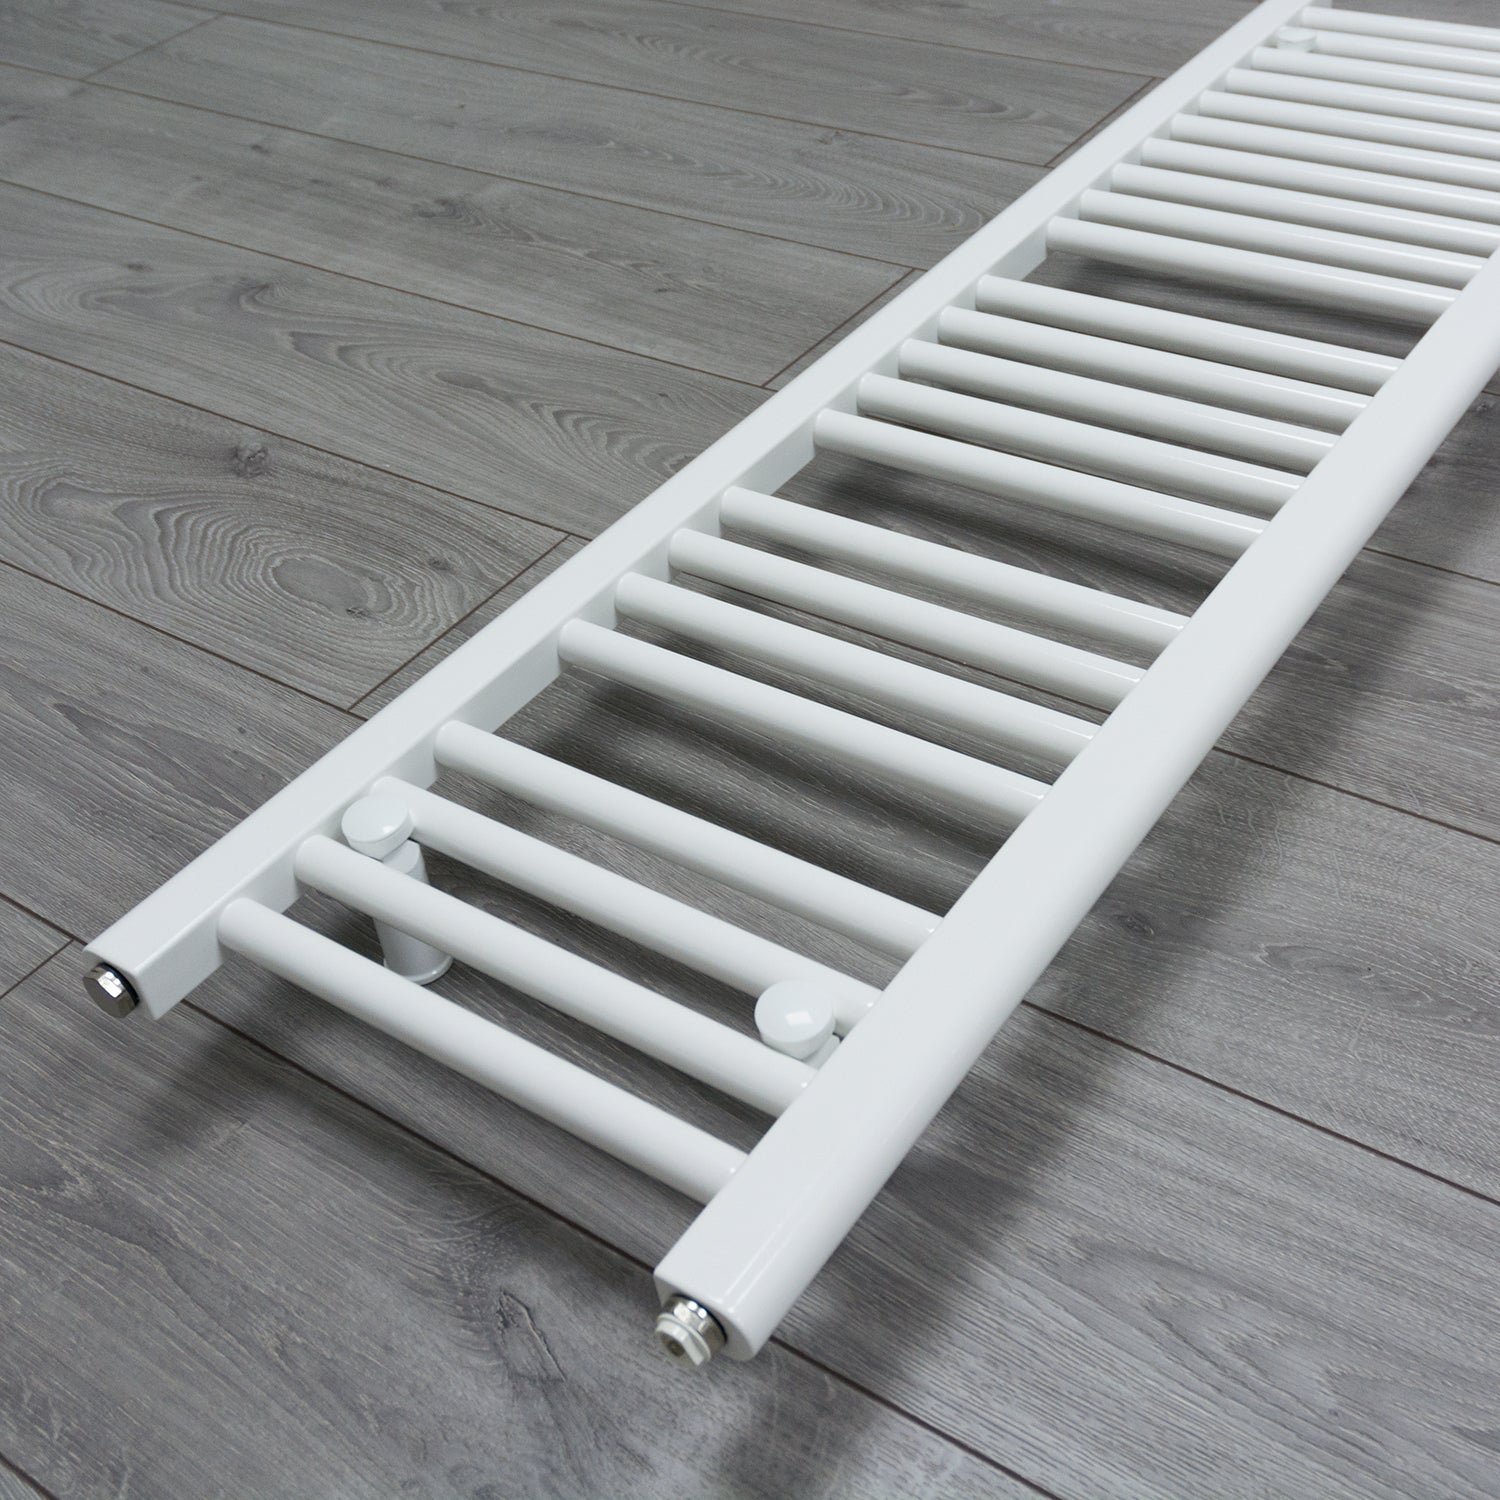 300mm x 1000mm White Heated Towel Rail Radiator Close Up Image